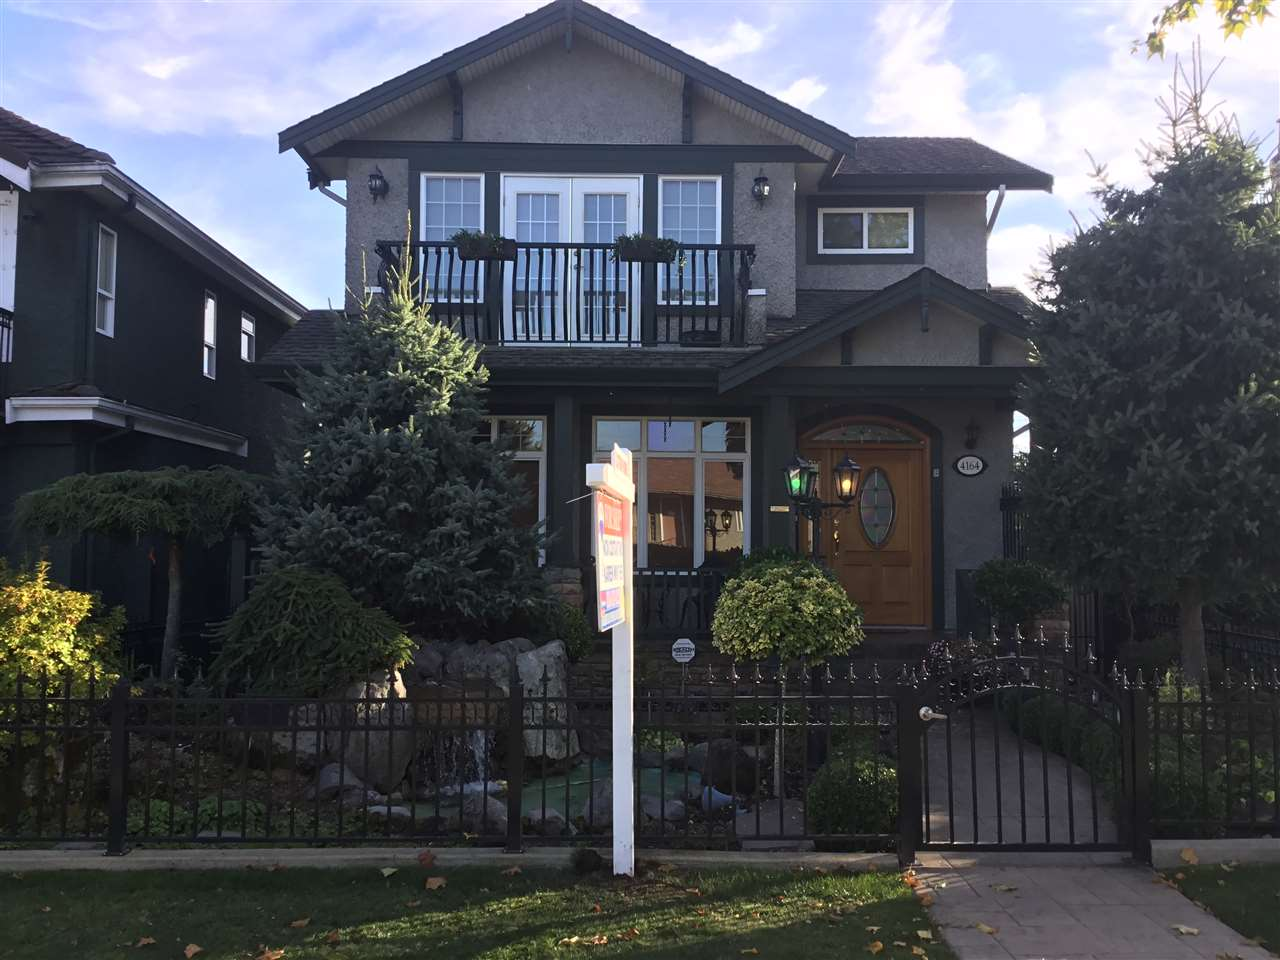 FIRST TIME ON THE MARKET - The perfect address close to everything but on nice quiet street for children. Custom built Italian inspired 2 storey plus basement featuring 3 bdrms (one on the main), formal liv and din rm with f/p, open kitchen with island S/S appls and fam rm with f/p.Rec rm and wine rm down with private outside entrance.High end finishing throughout with granite counters and island, ceramic tile and hardwood floors, high ceilings lots of cherry wood cabinets and so much more.Double garage, stamped concrete patios/walkways and amazing gardens, decorative pond, front and back fenced with iron picket fence and gates.Pride of ownership shows through - you will want to live here once you see it!!! Call today for a private showing.Very flexible possession.